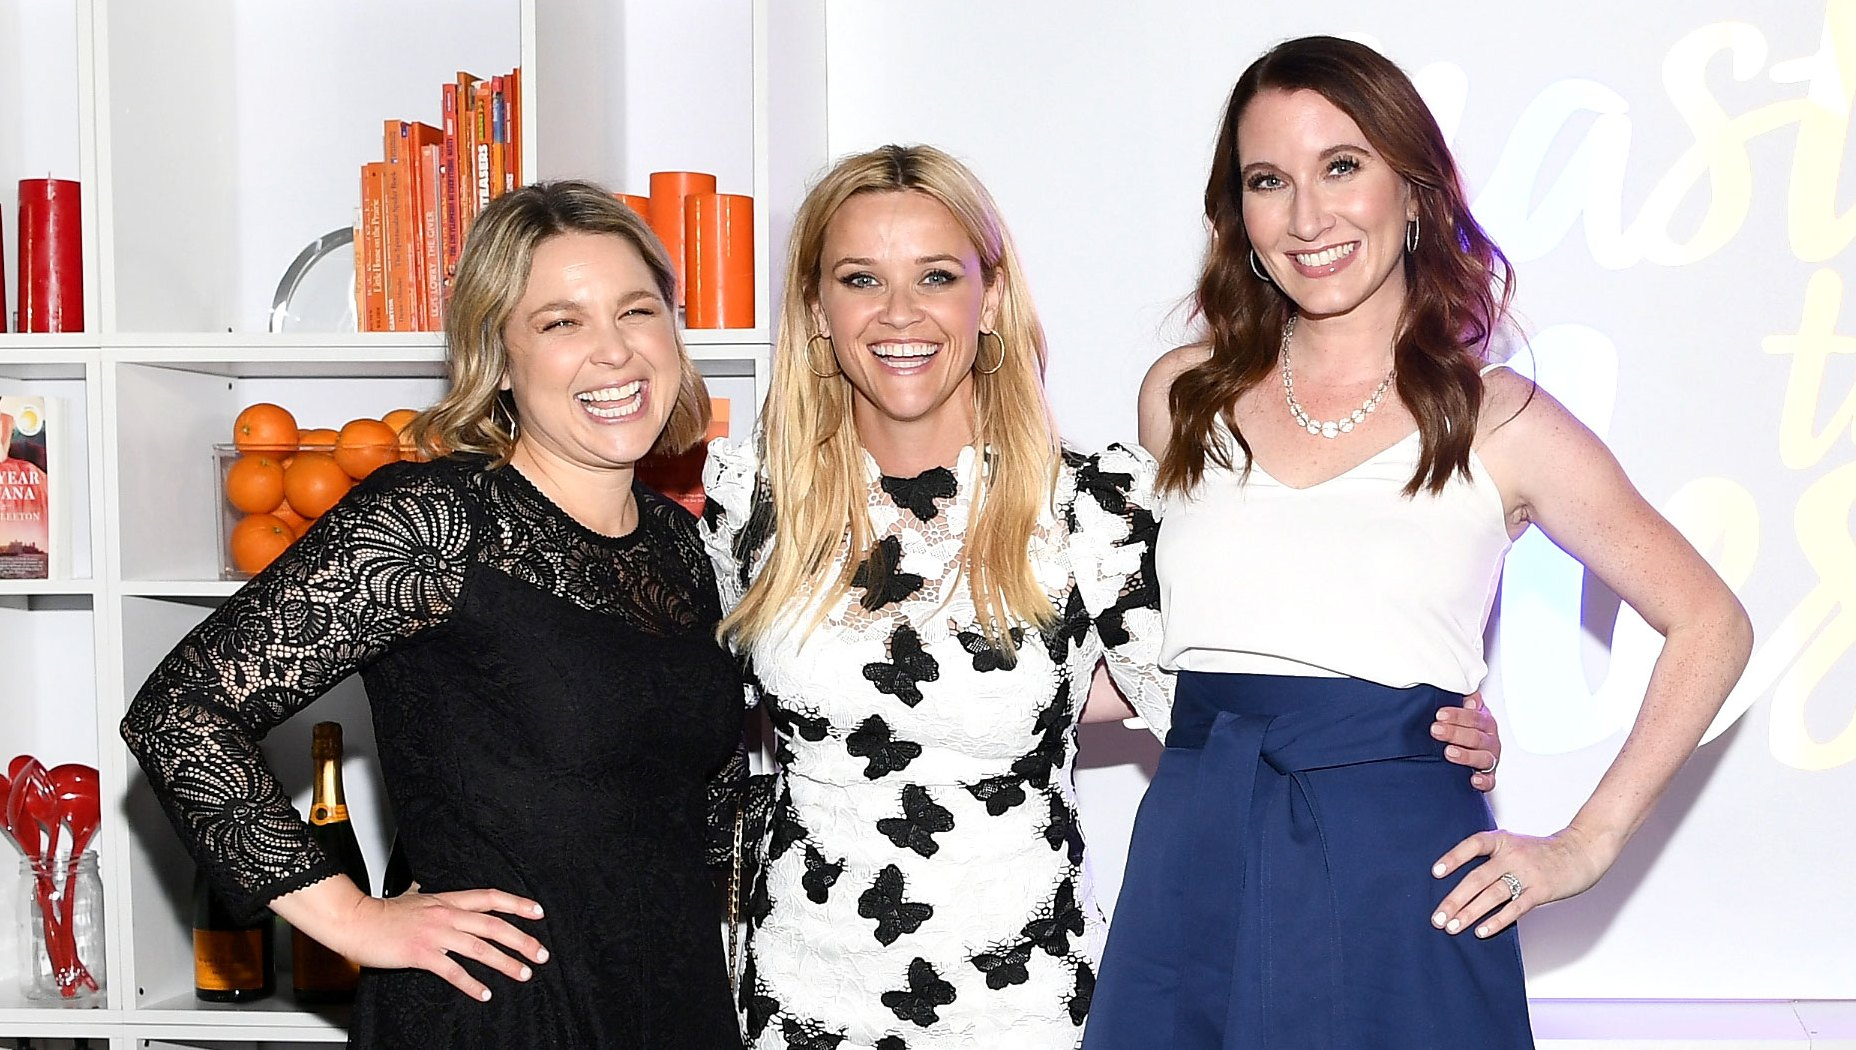 Joanna Teplin, Reese Witherspoon and Clea Shearer